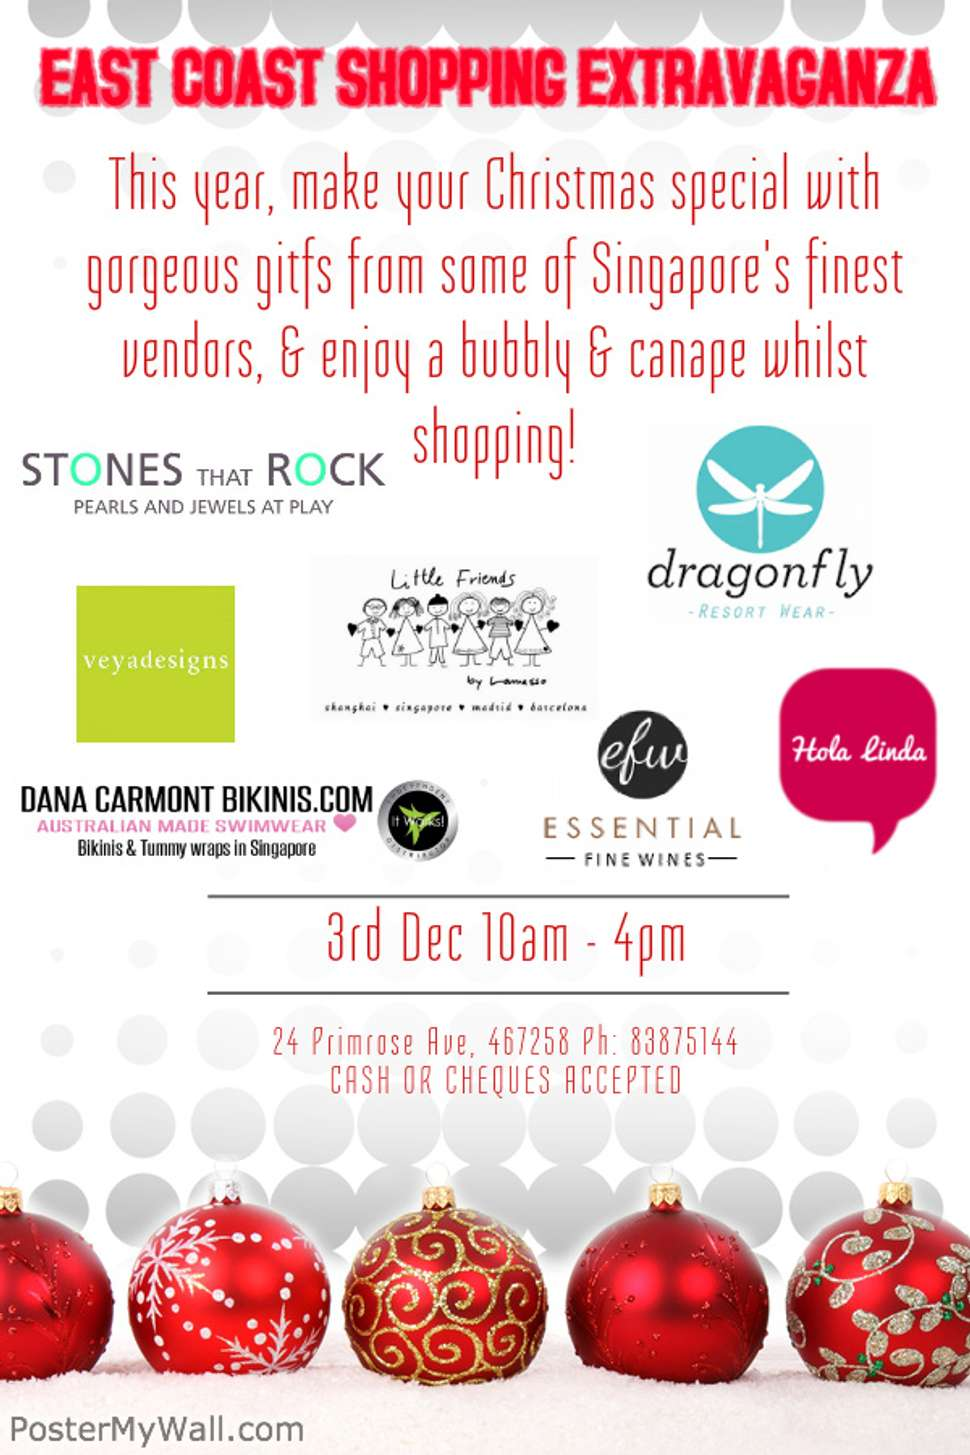 East Coast Shopping Extravaganza cover image | Singapore | Travelshopa